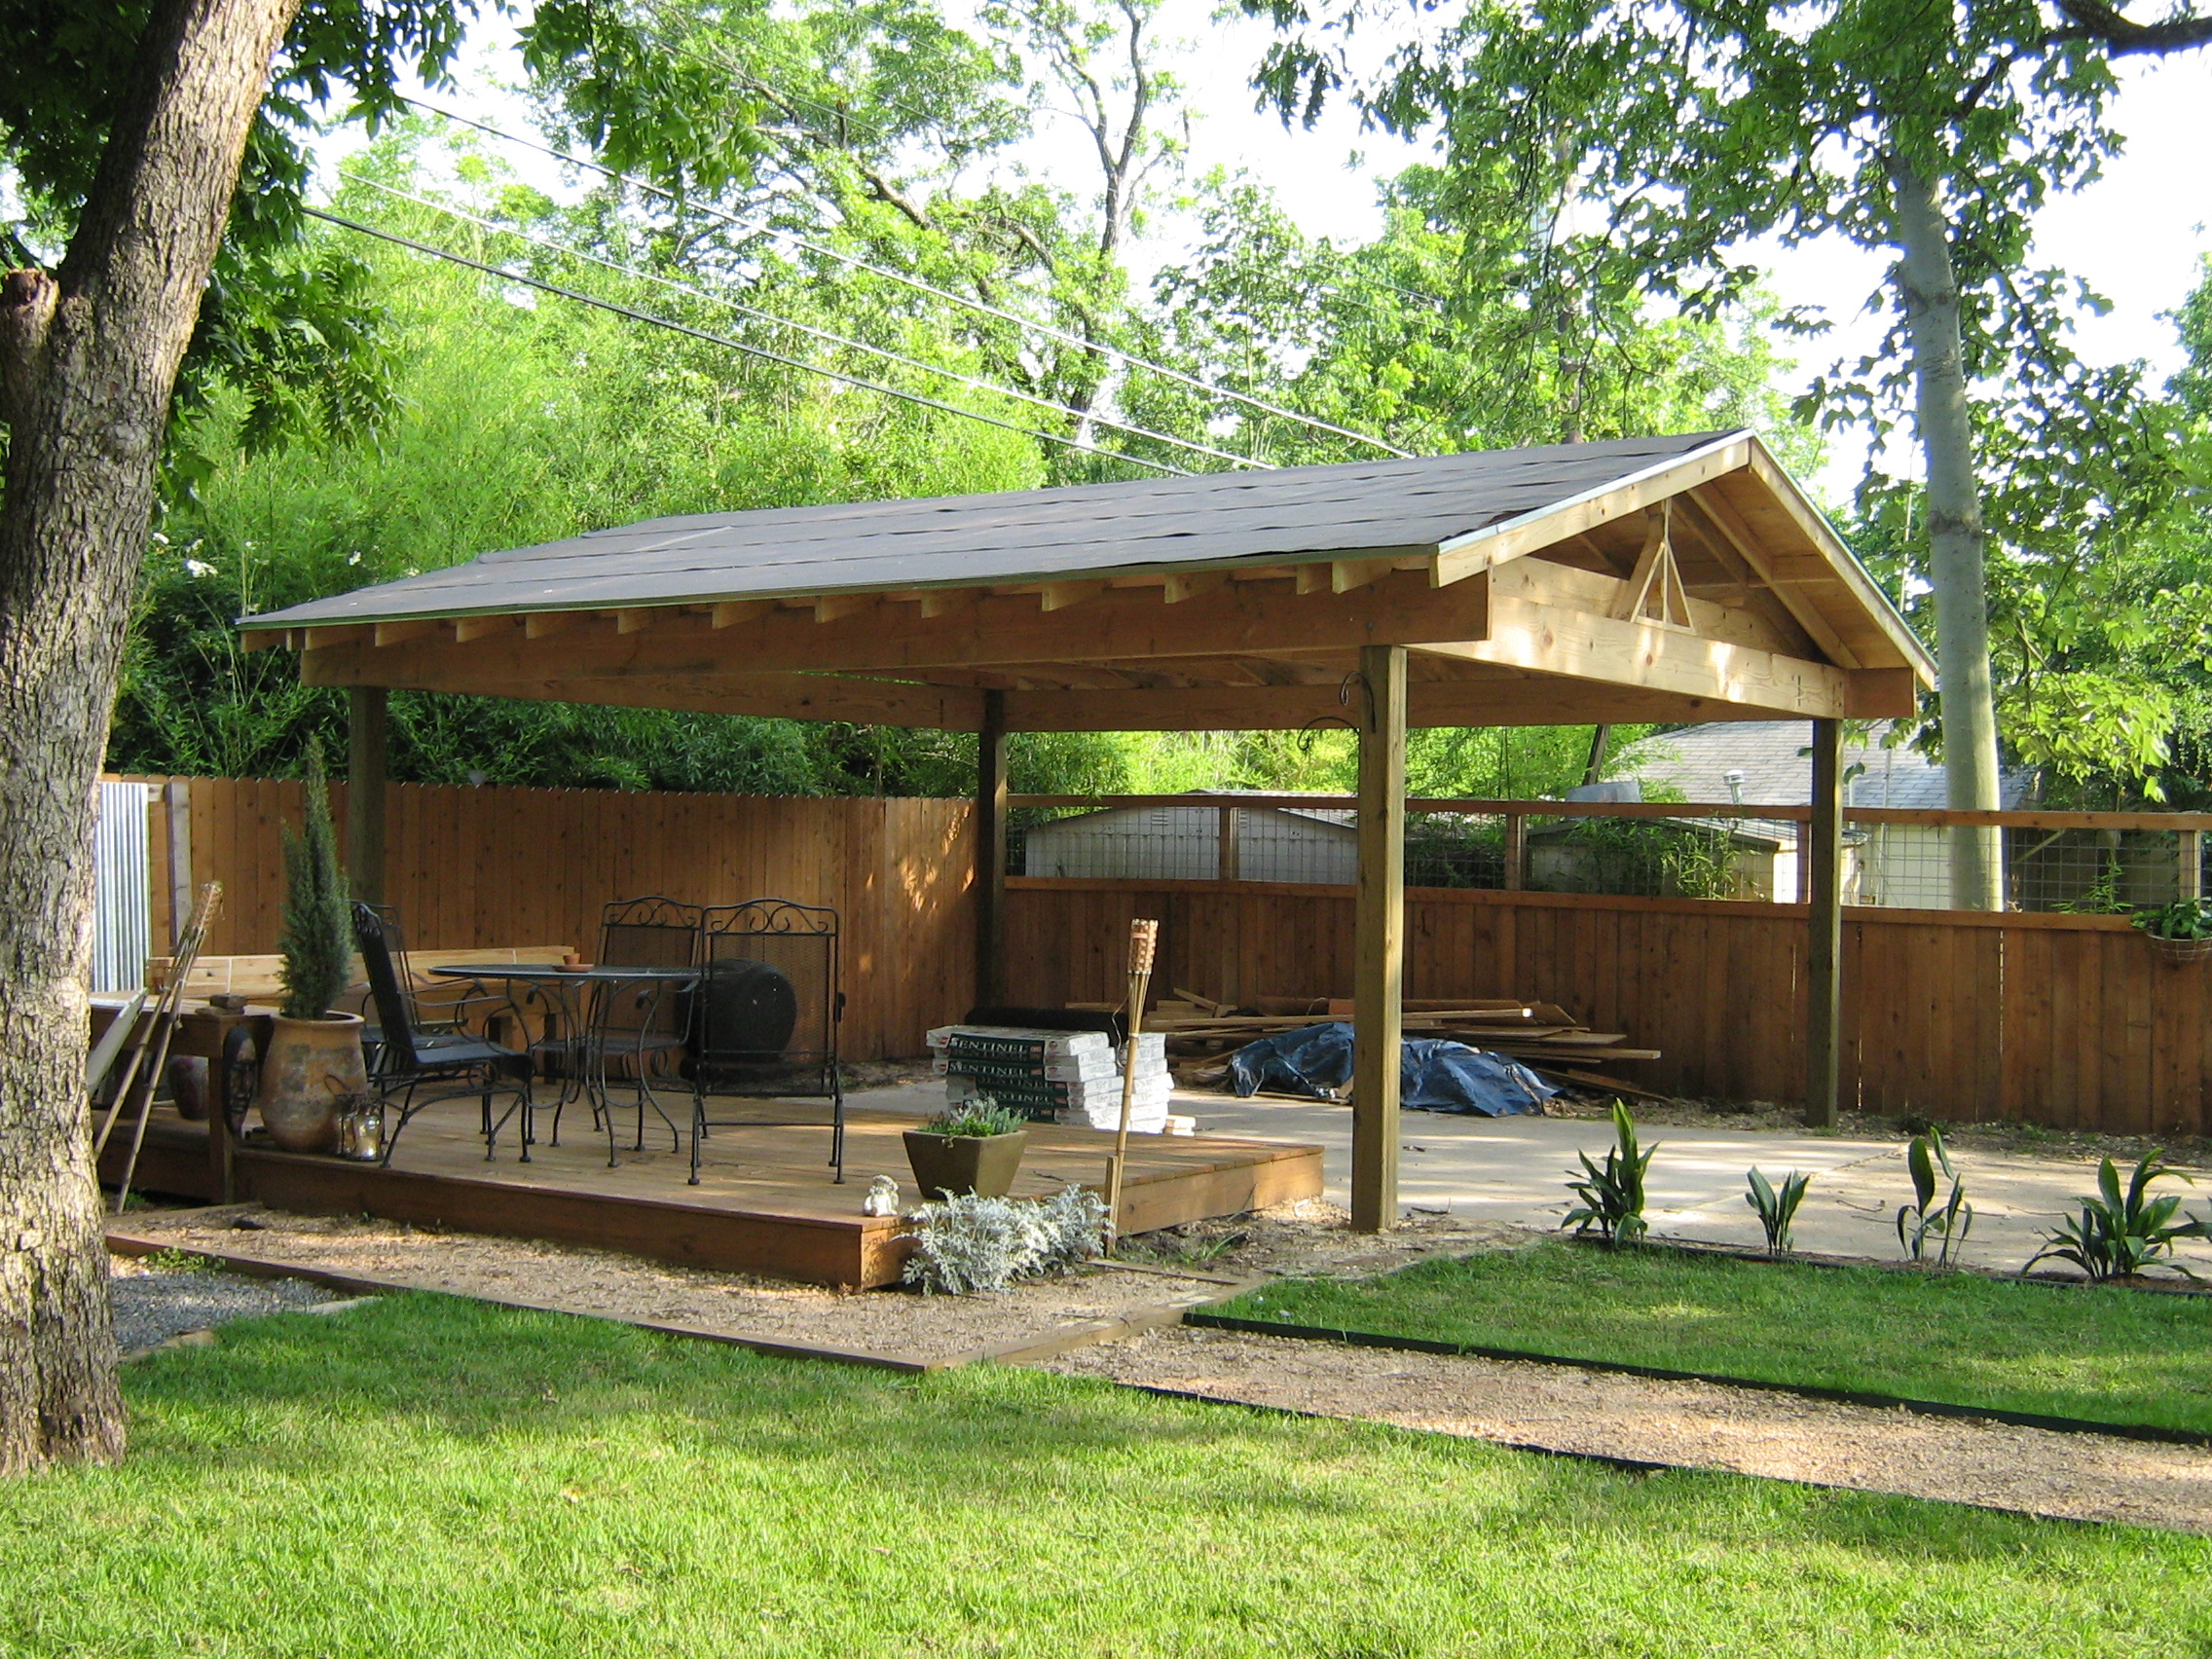 Car Canopy Wood : How to build wood carport kits do it yourself plans